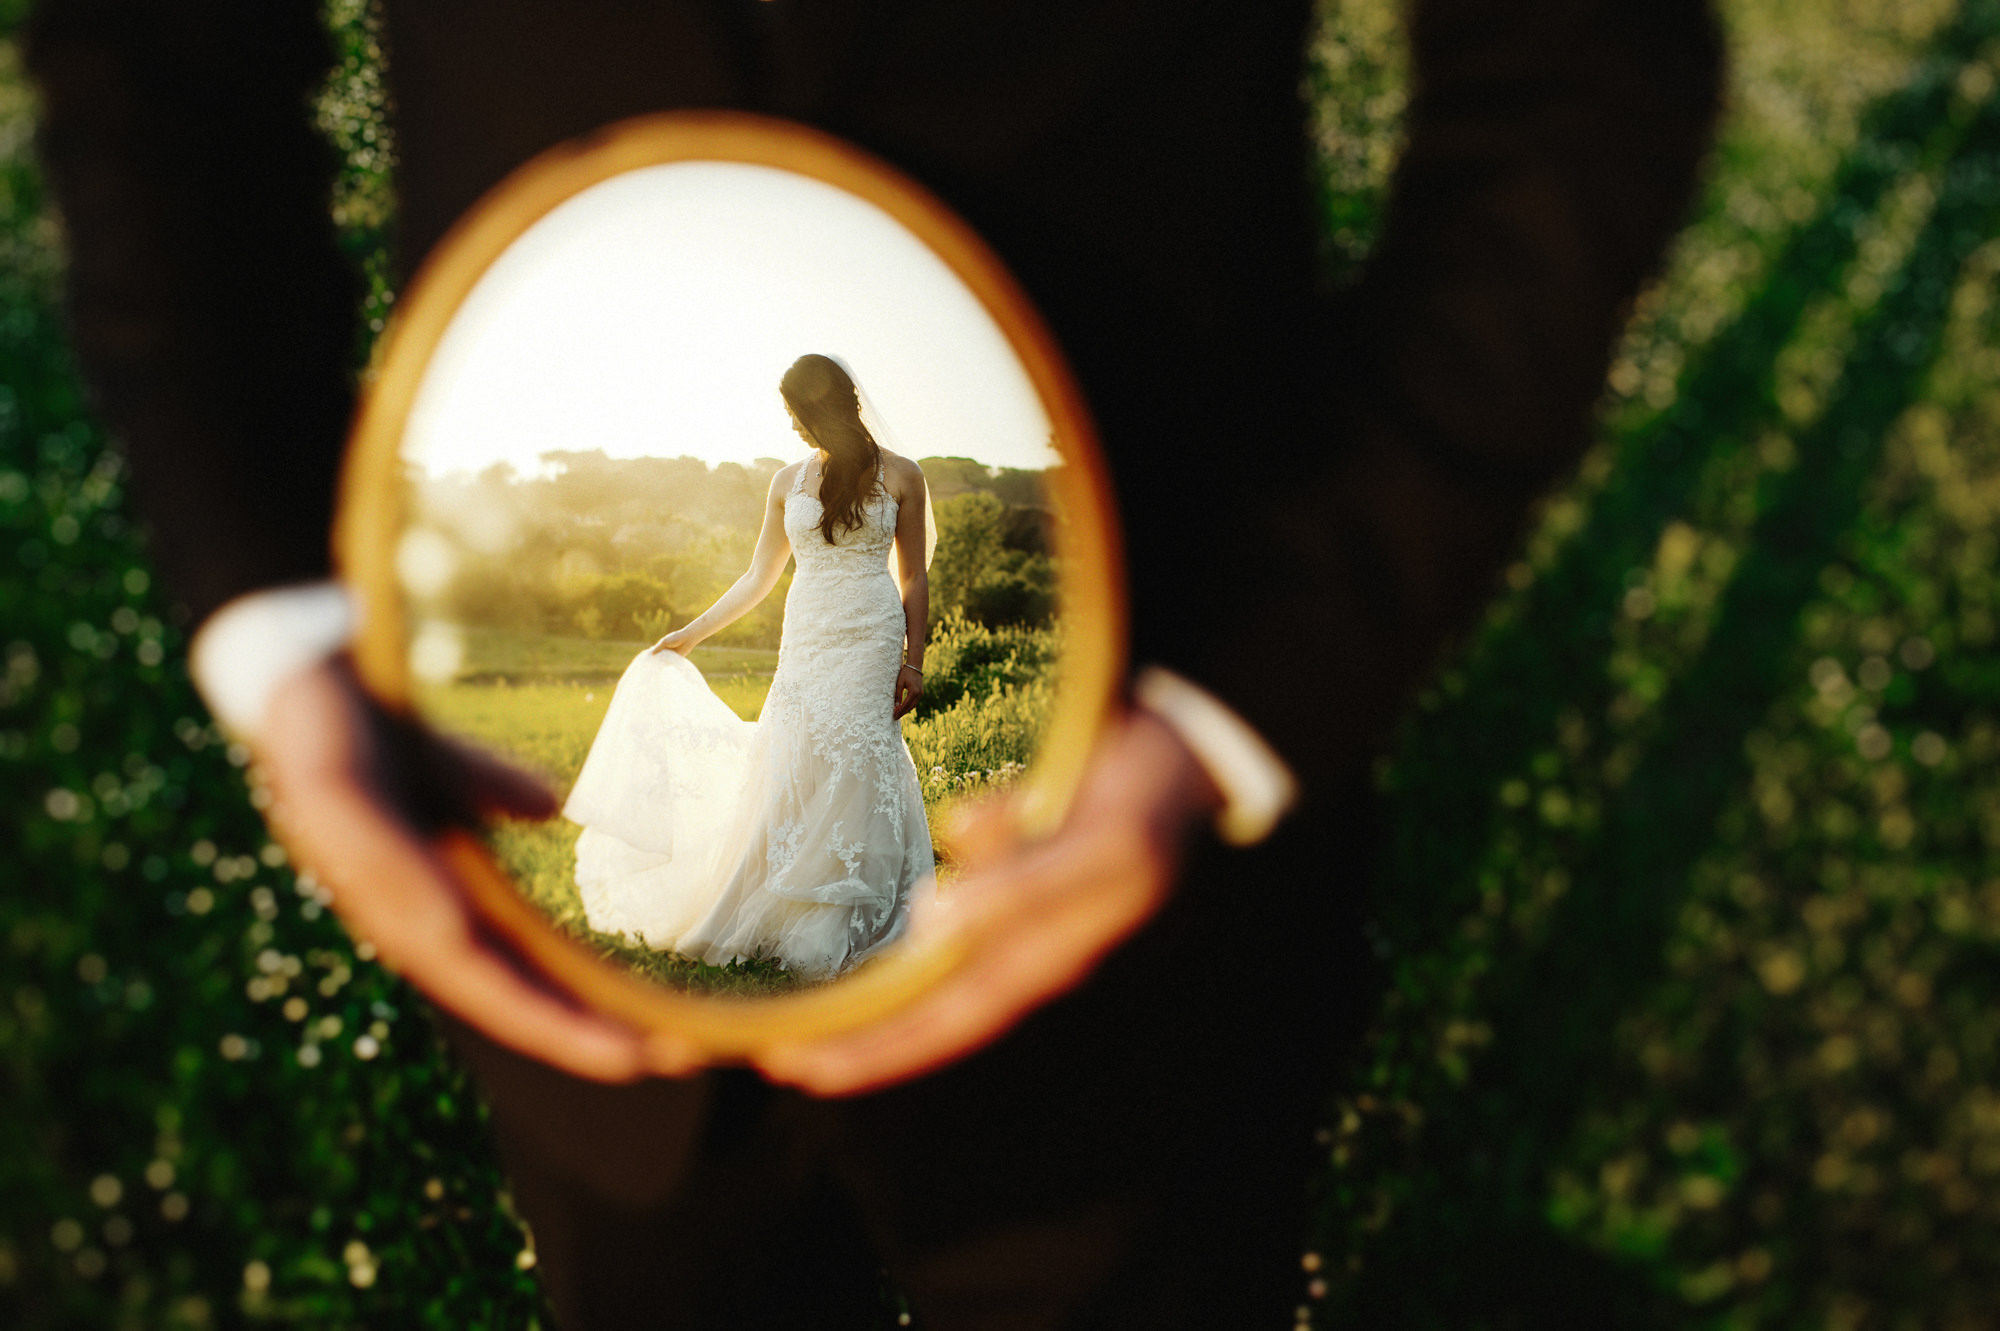 Groom holding mirror with bride reflected - photo by Fer Juaristi